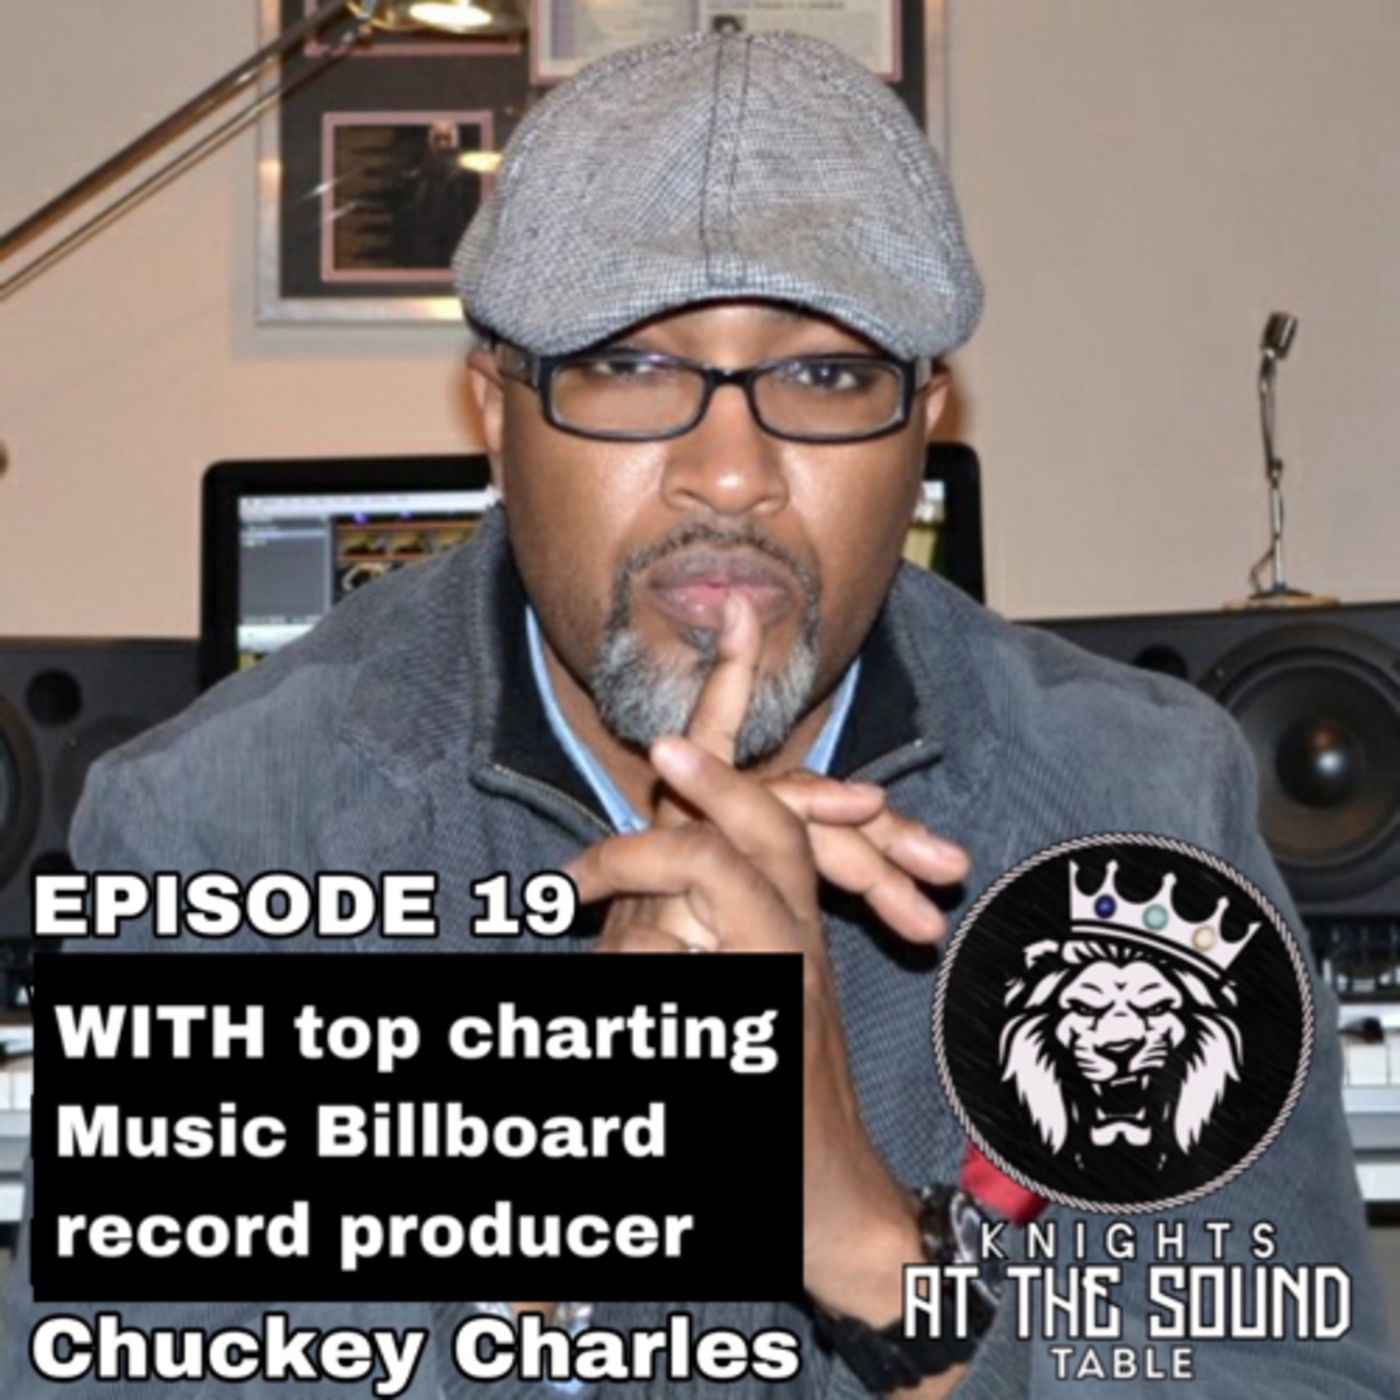 Knights at the sound table episode 19 with Chuckey Charles